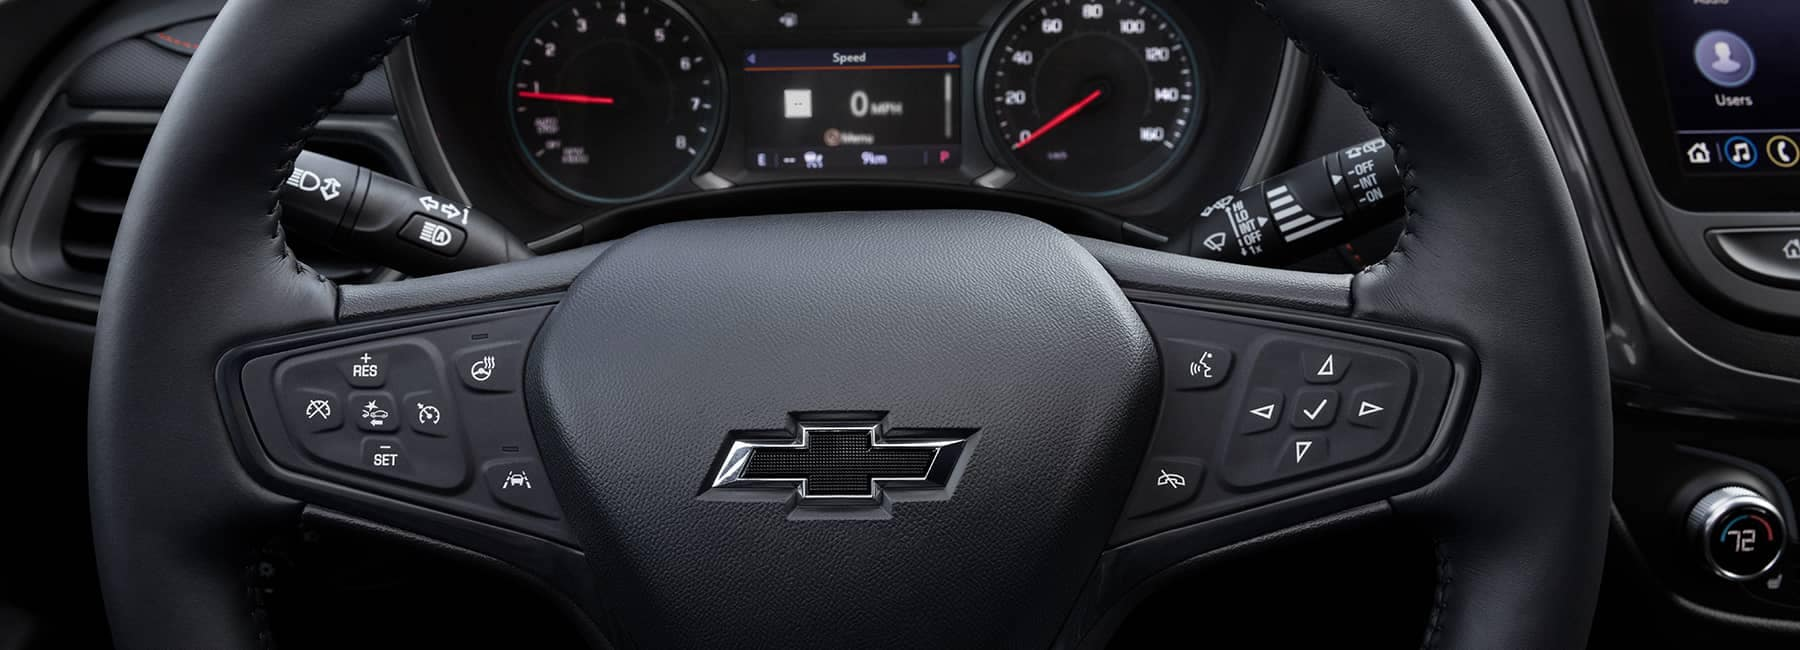 Interior photo of Chevrolet dashboard with wheel and accessories